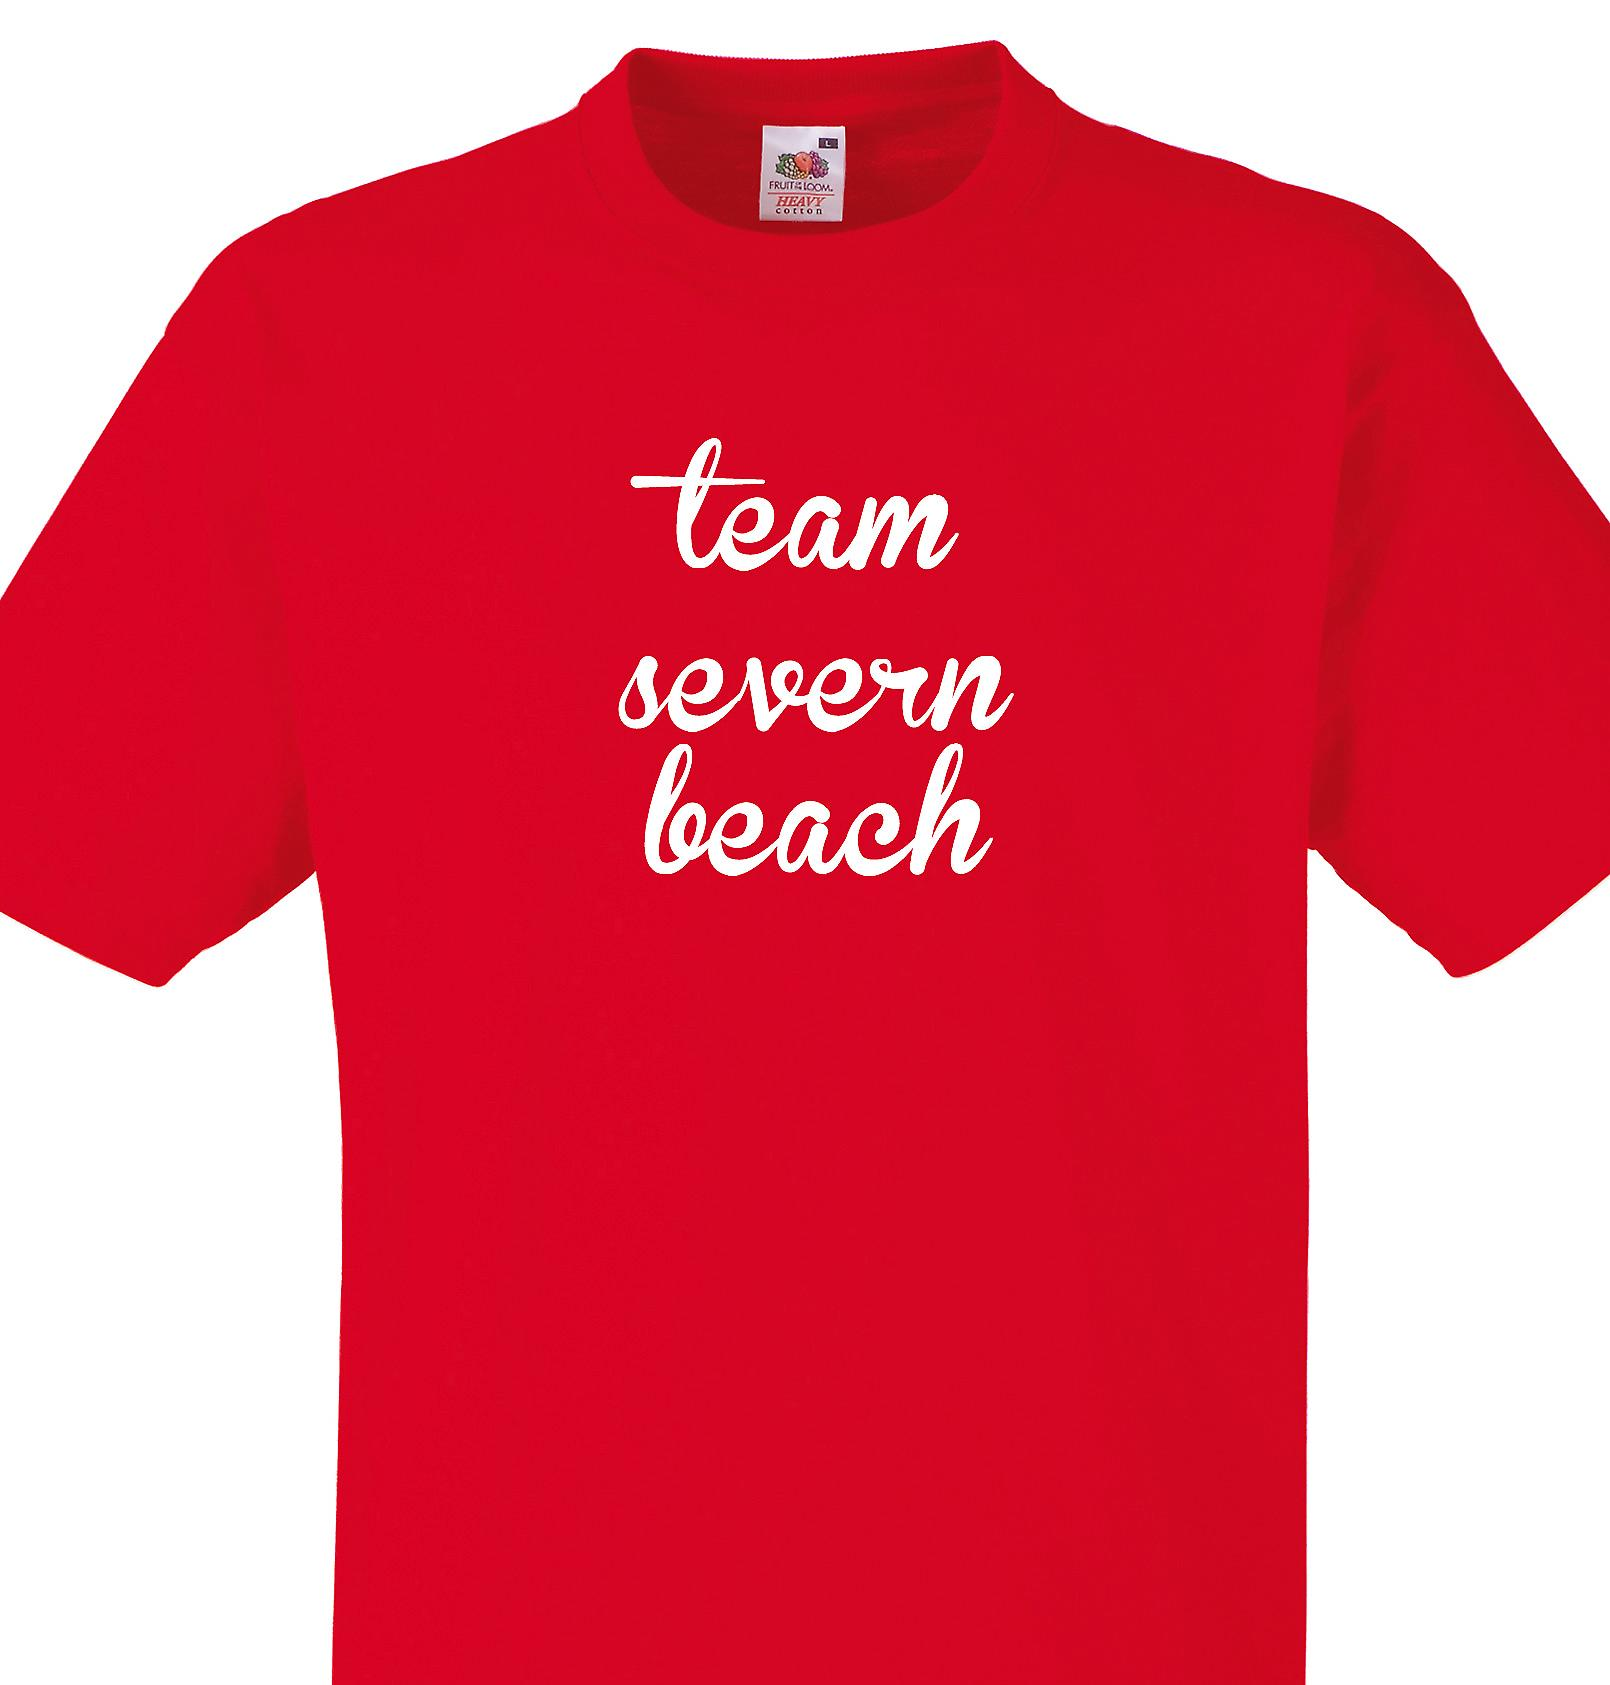 Team Severn beach Red T shirt